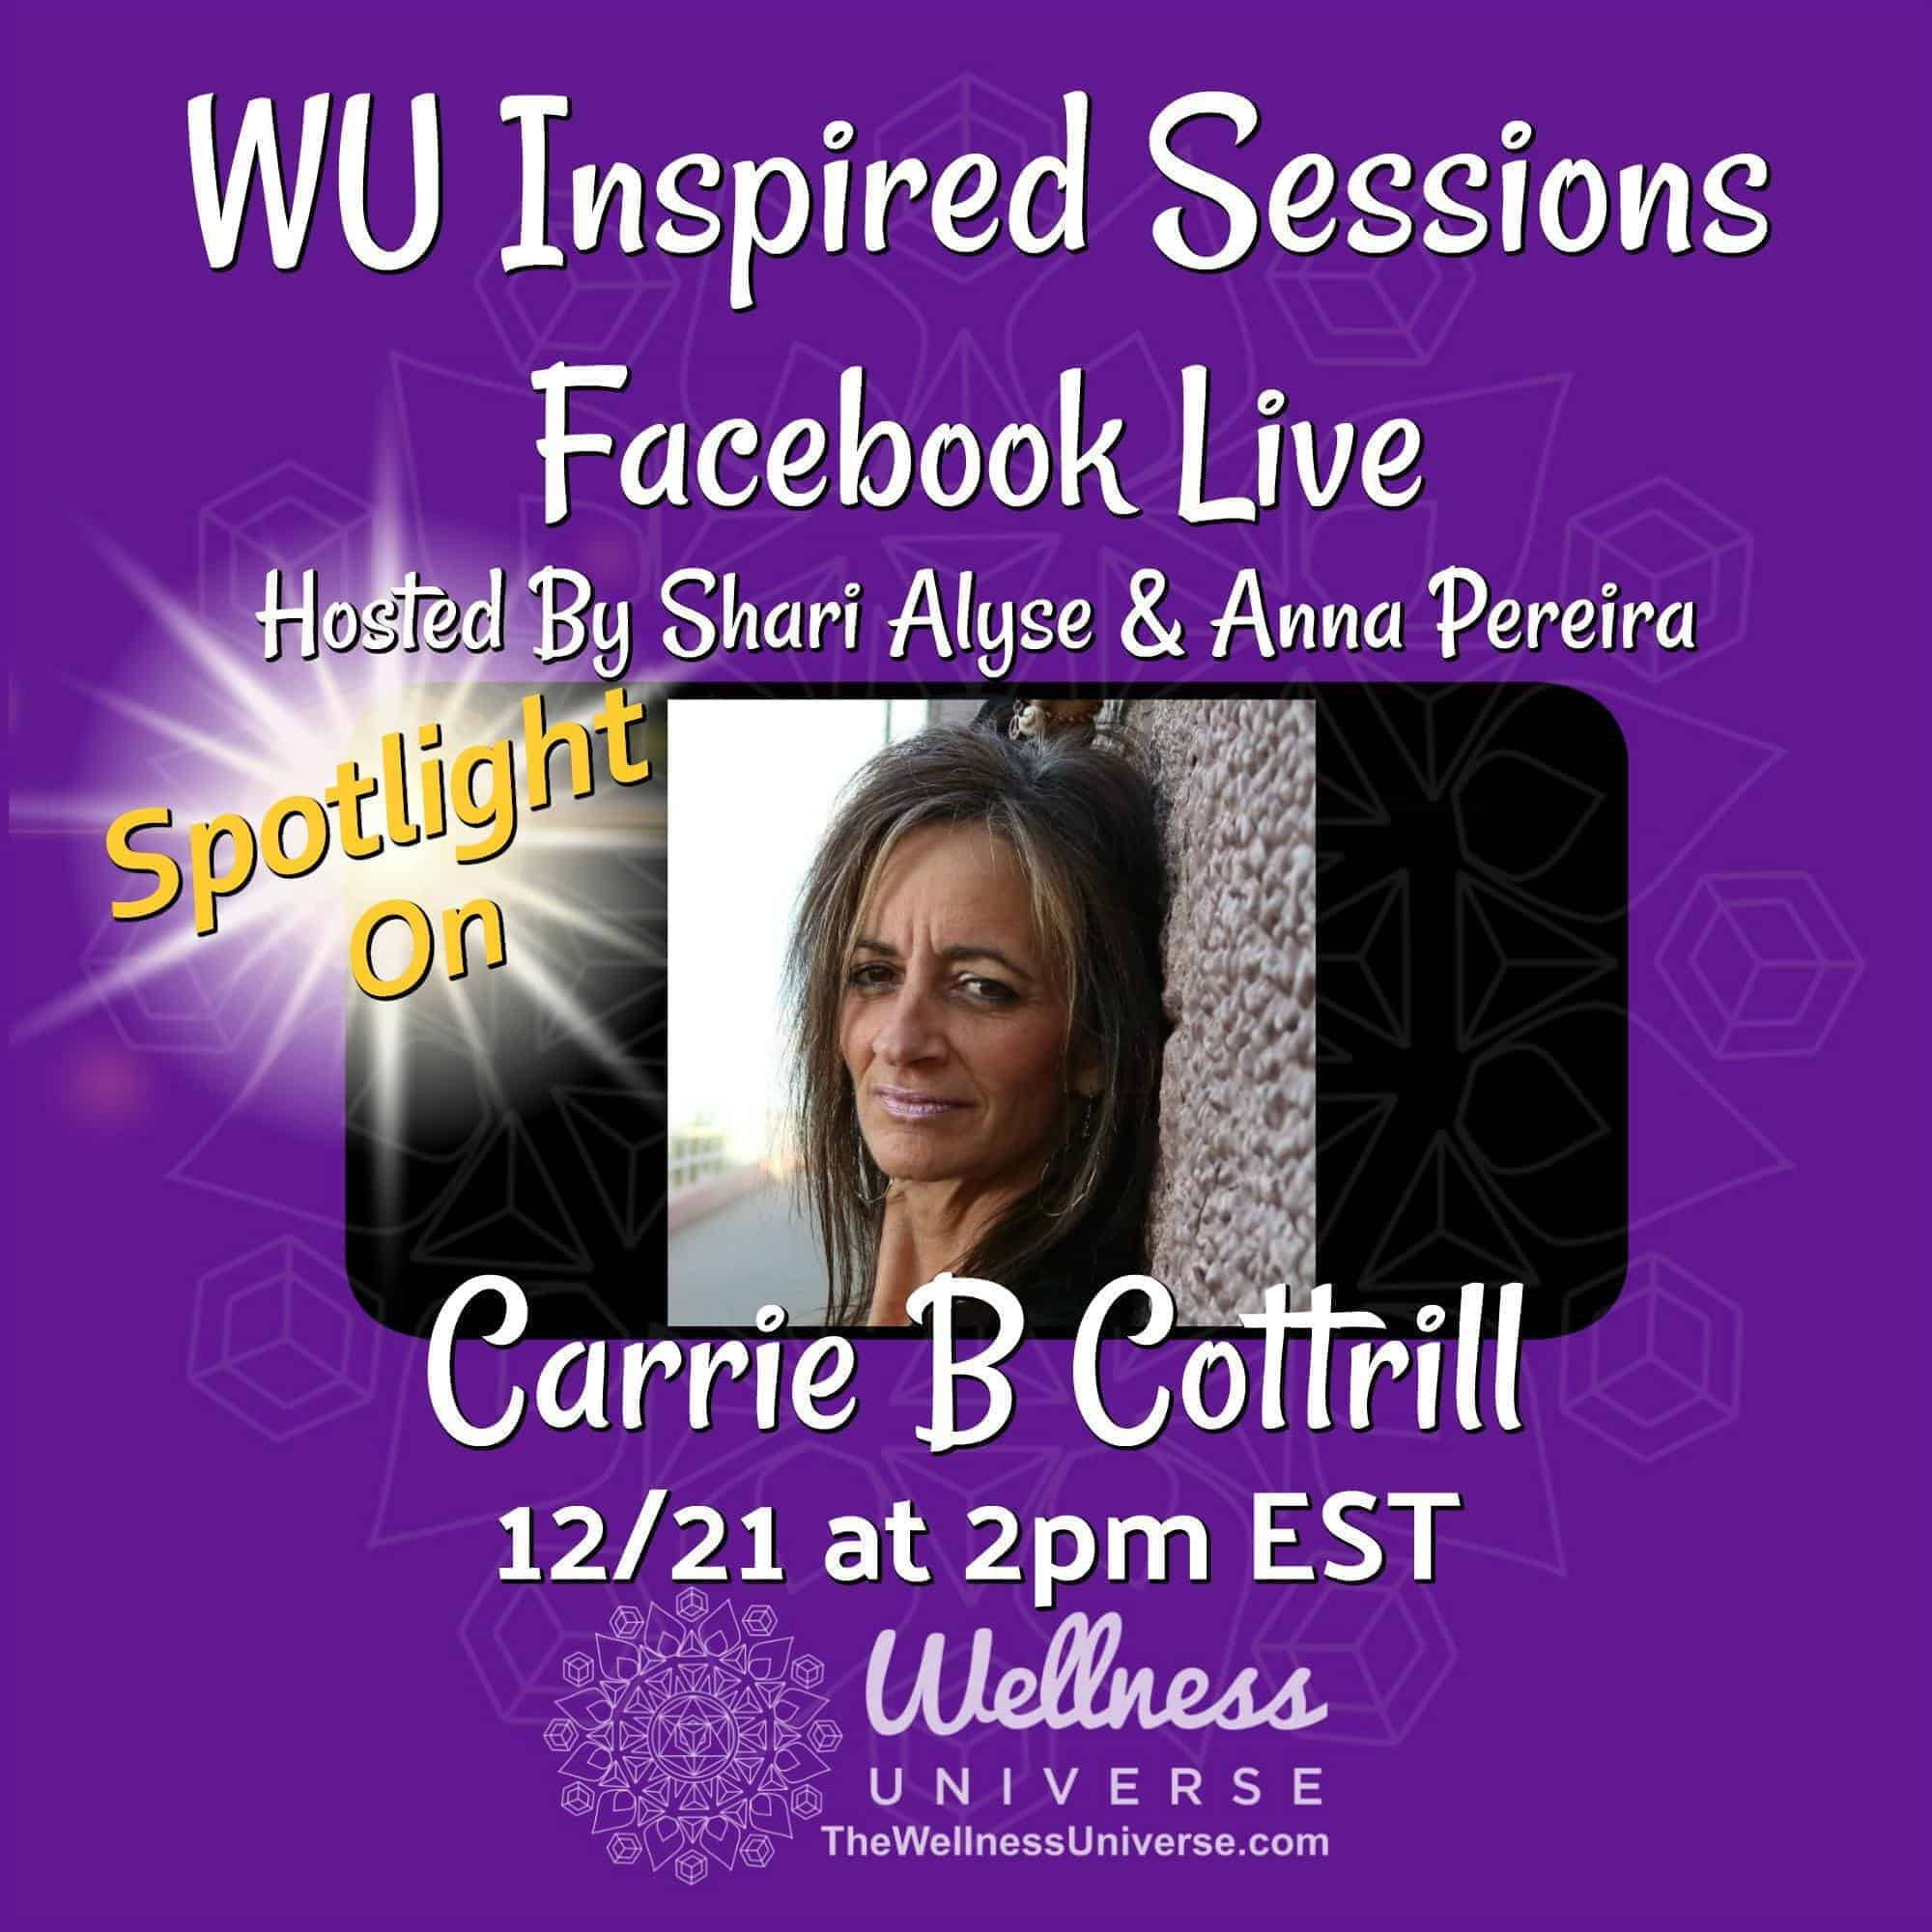 Want to increase the creativity in your life? Come meet WU World-Changer, Carrie B Cottrill, on this